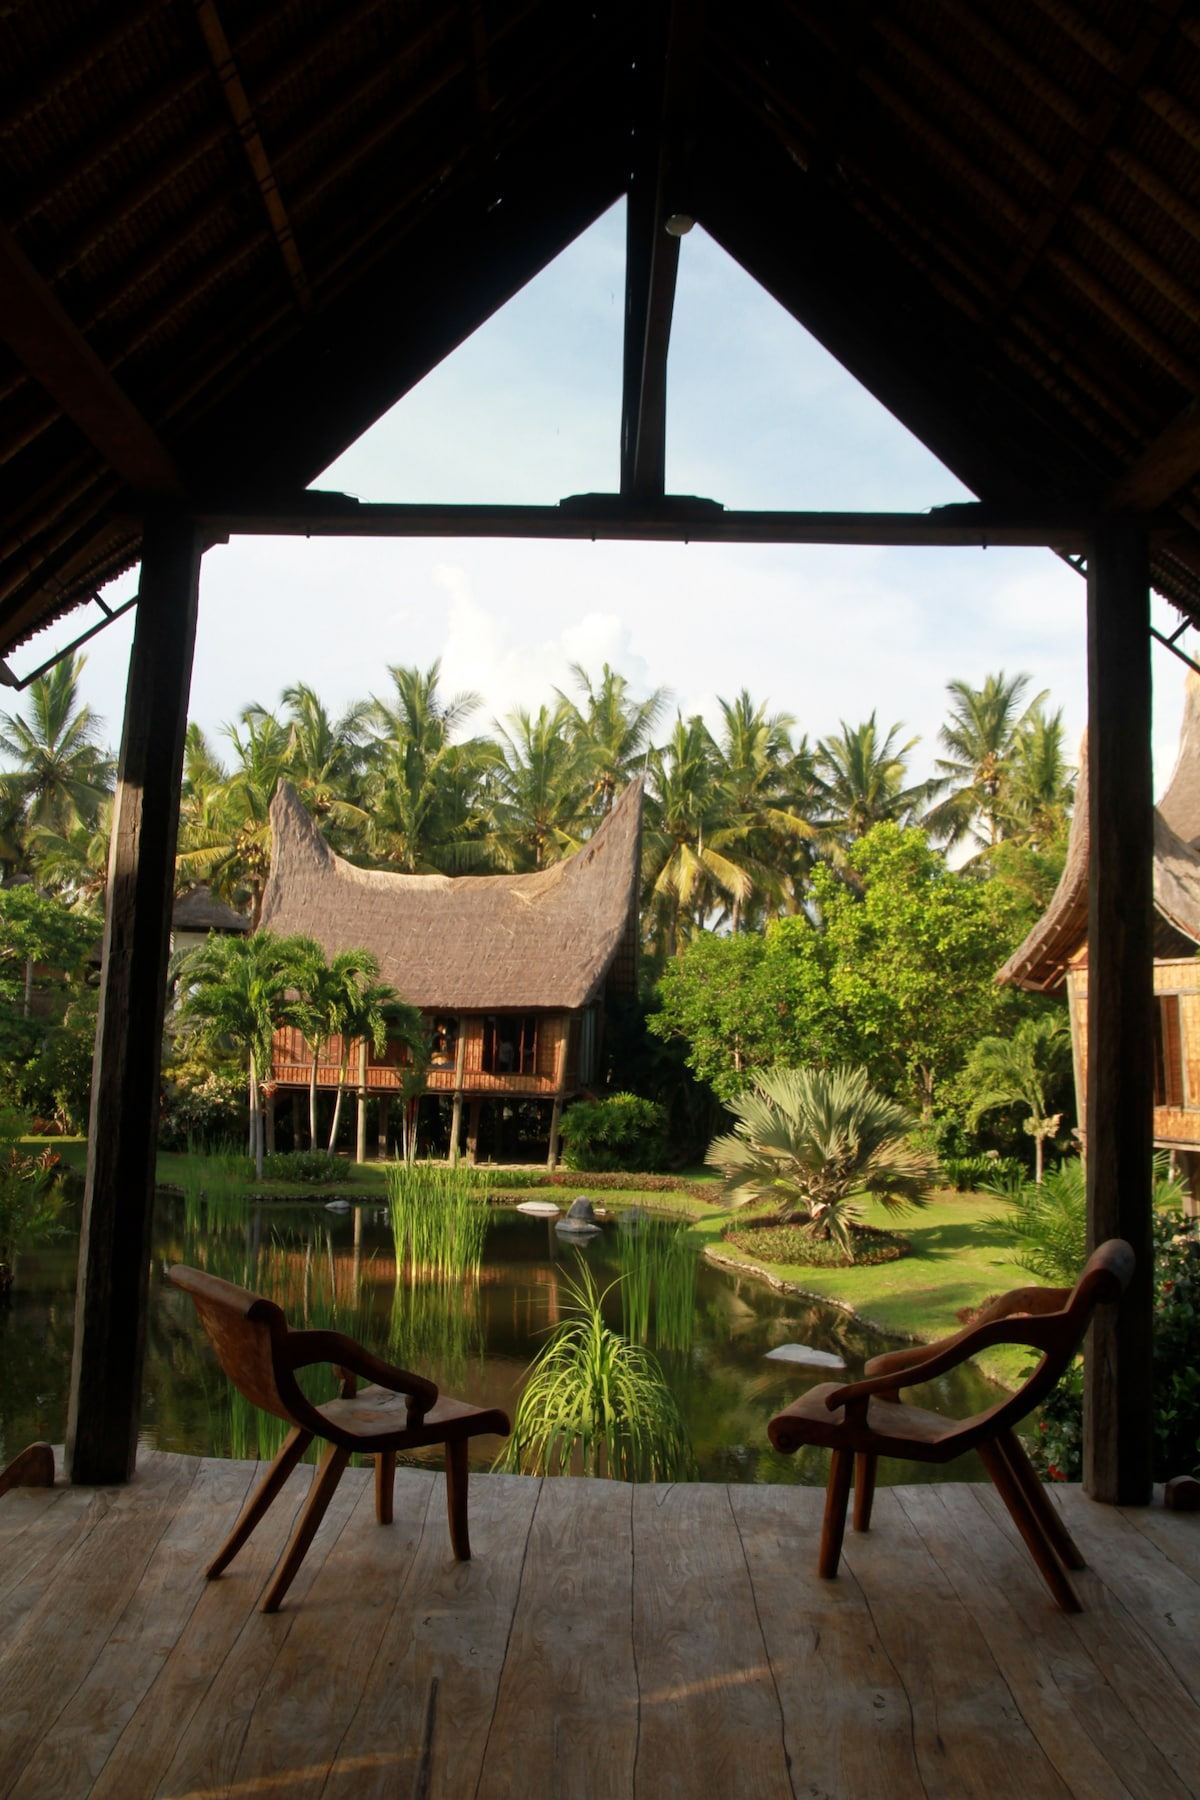 The view from the entry of Villa Agung